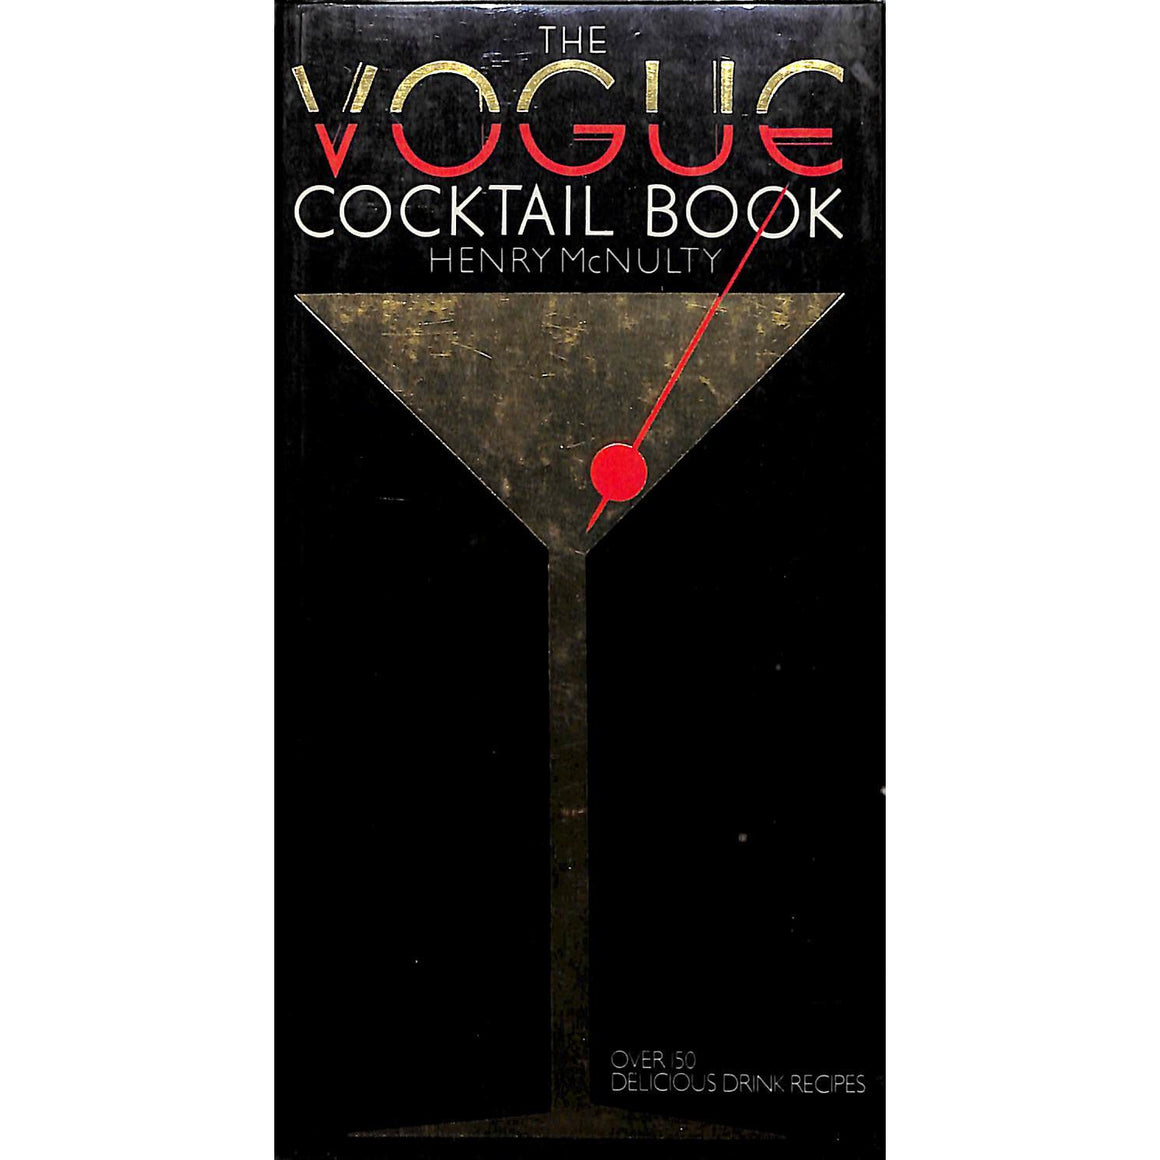 The Vogue Cocktail Book